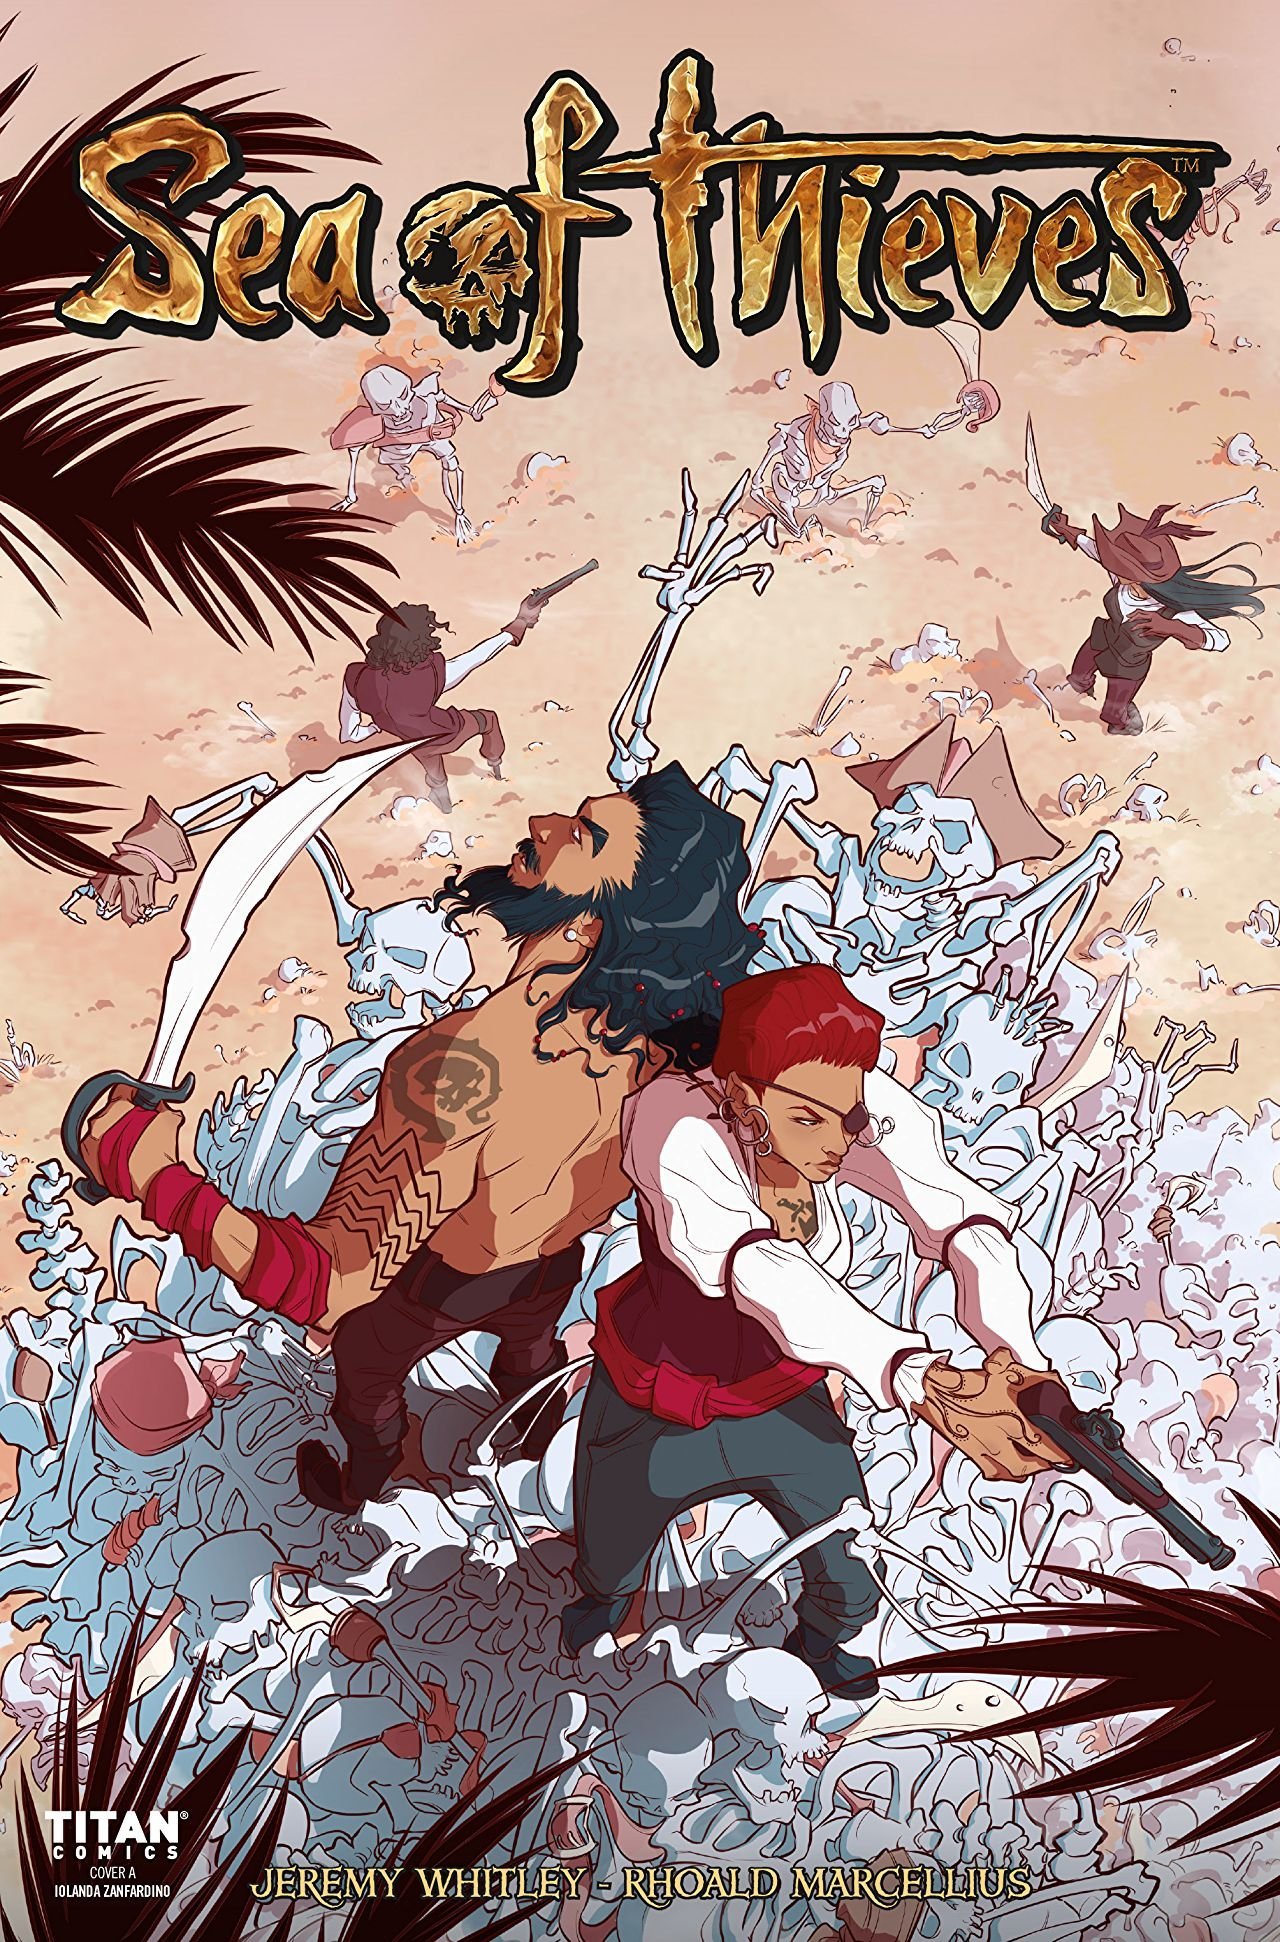 Sea of Thieves 03 (June 2018) (cover a)